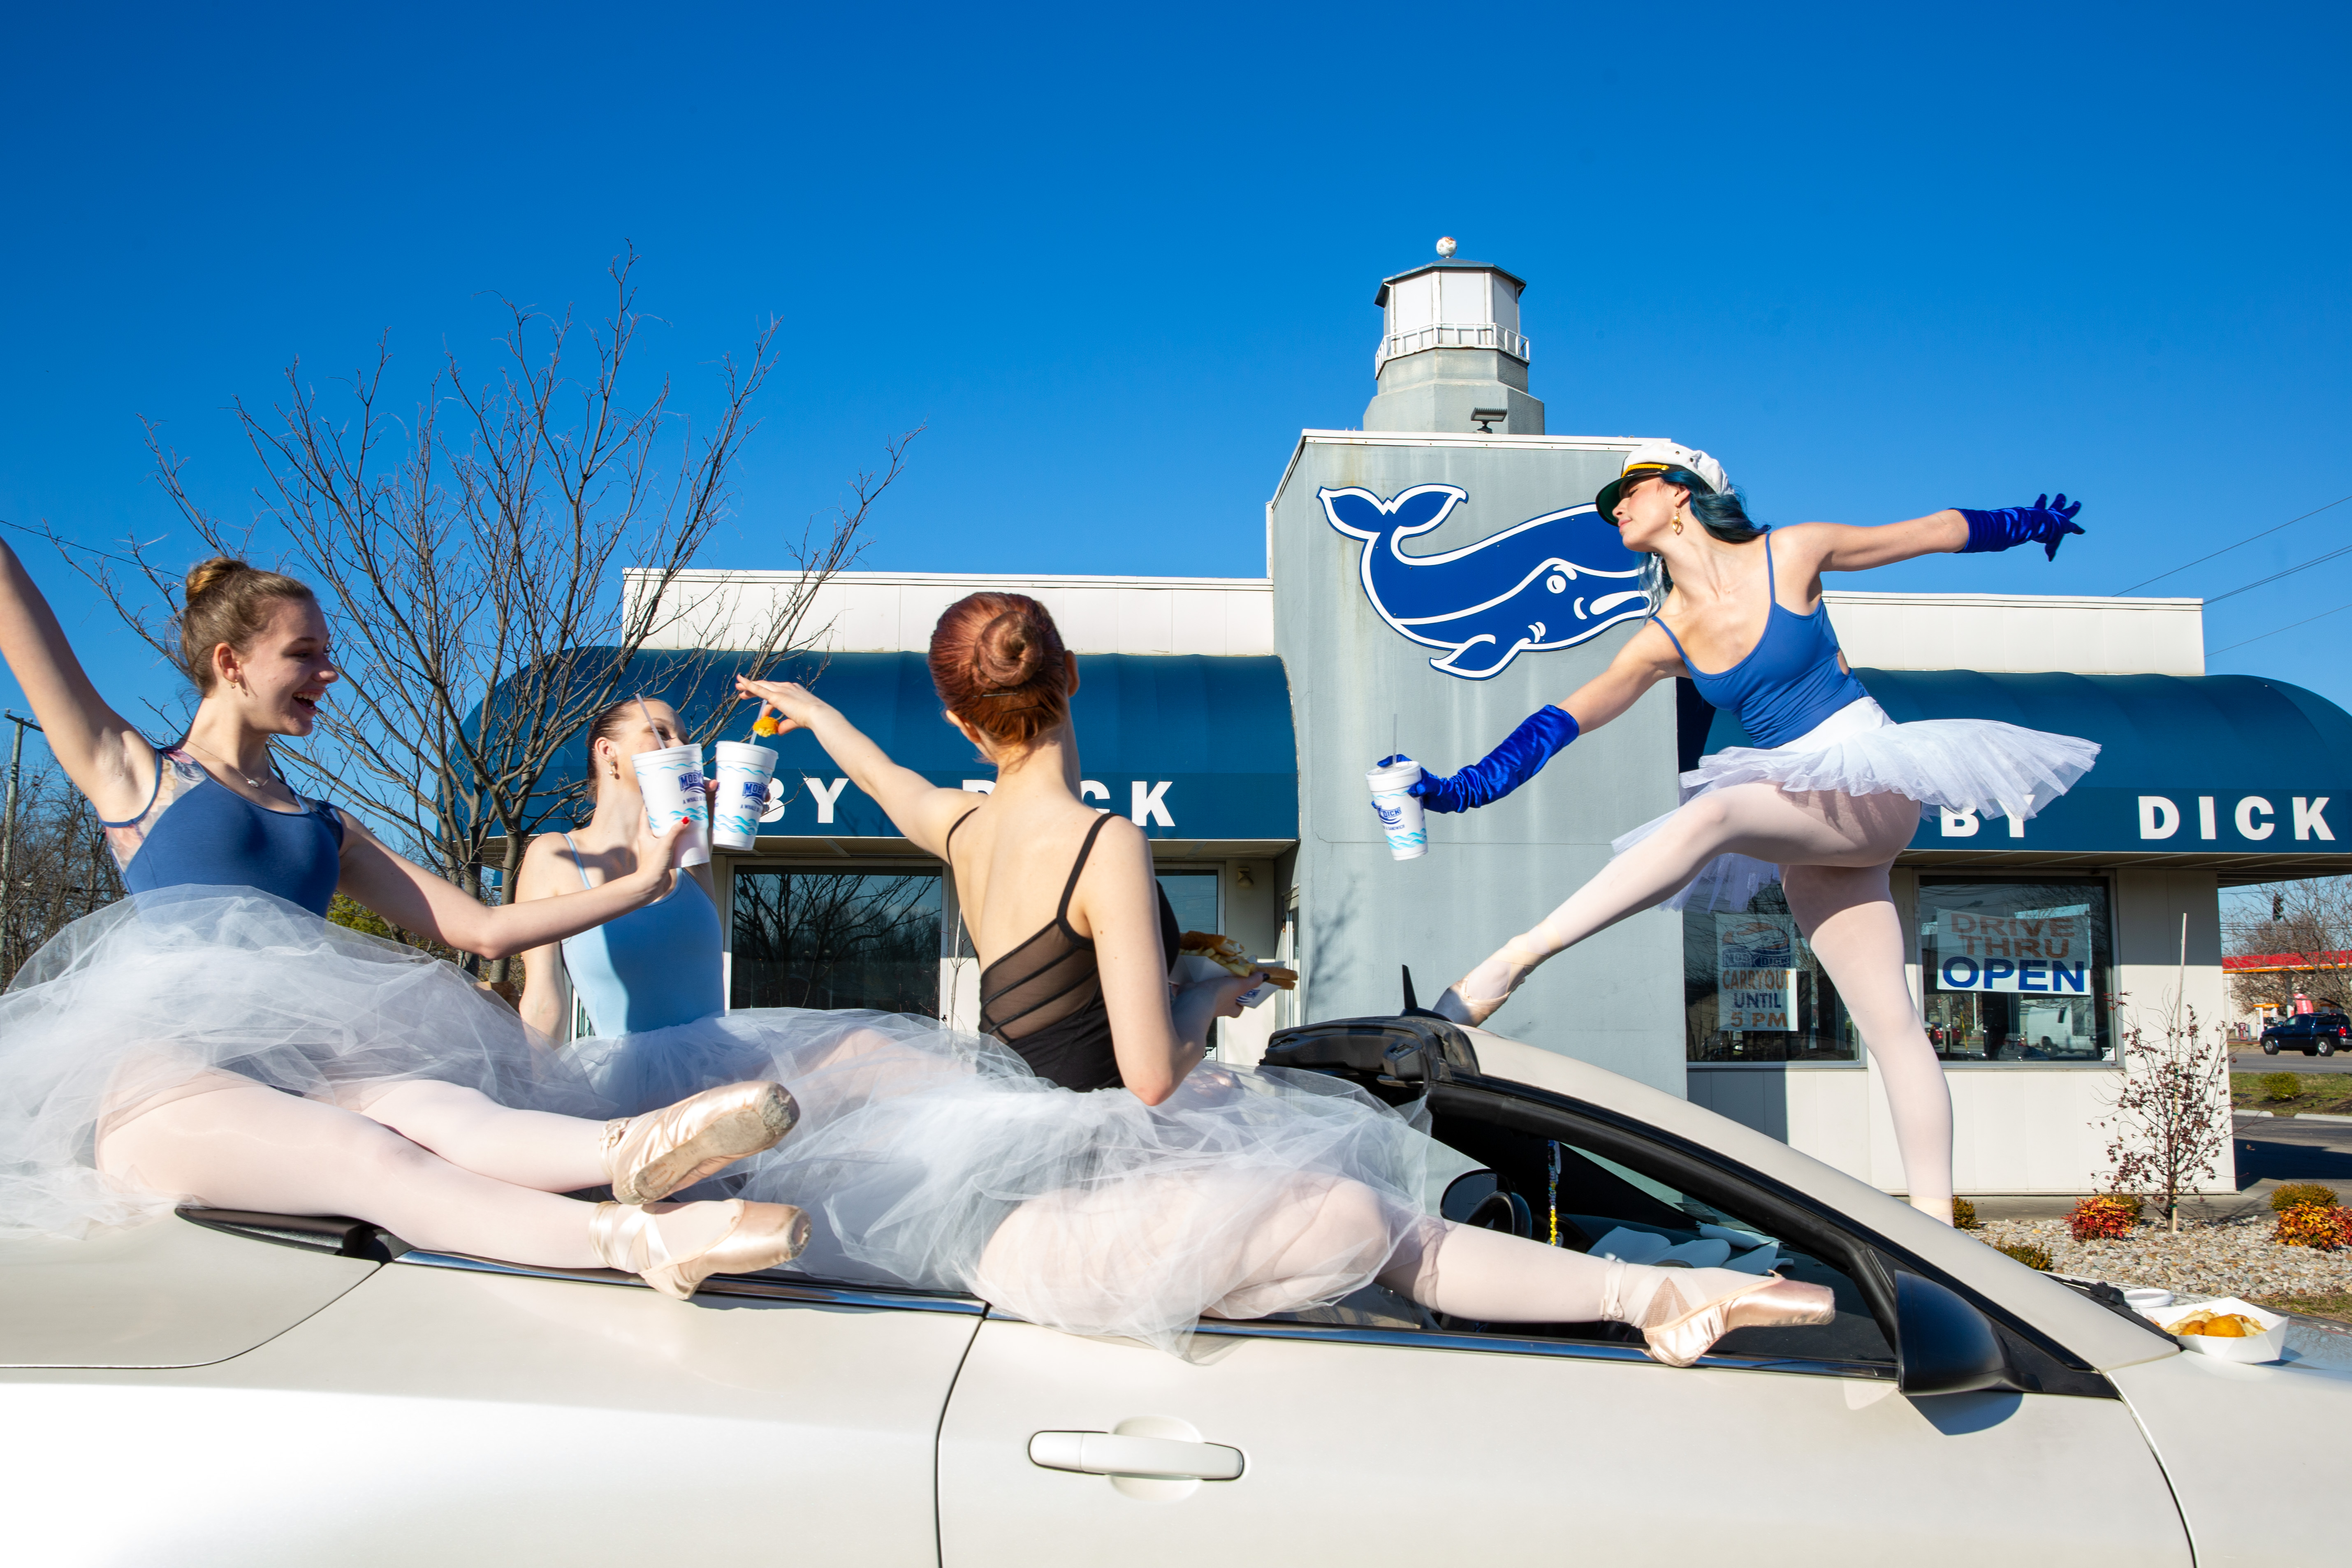 Ballerinas posing outside in front of a restaurant